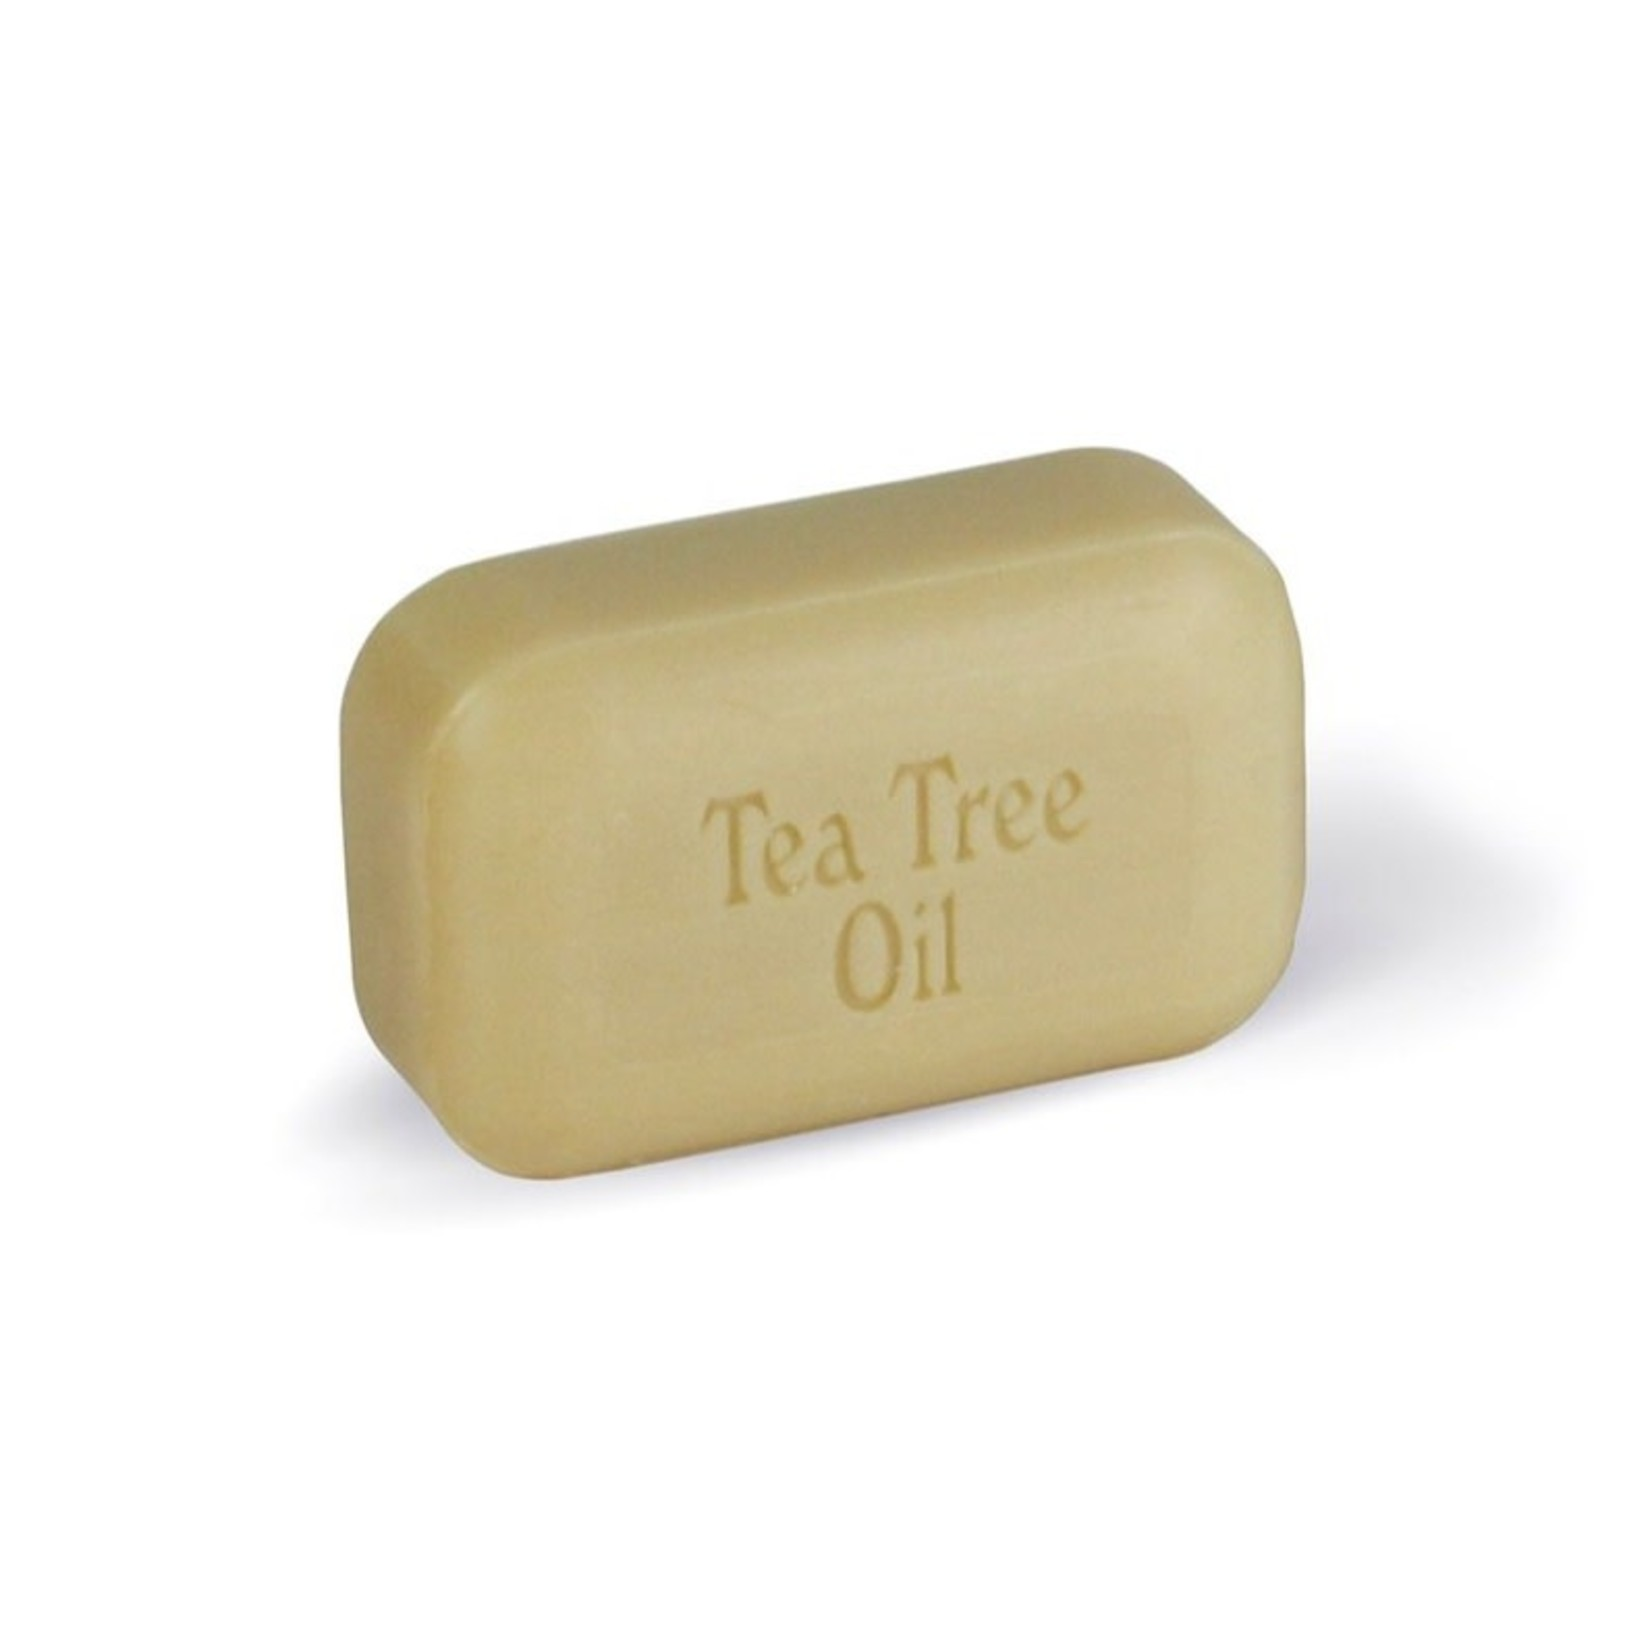 The Soap Works The Soap Works Tea Tree Oil Soap